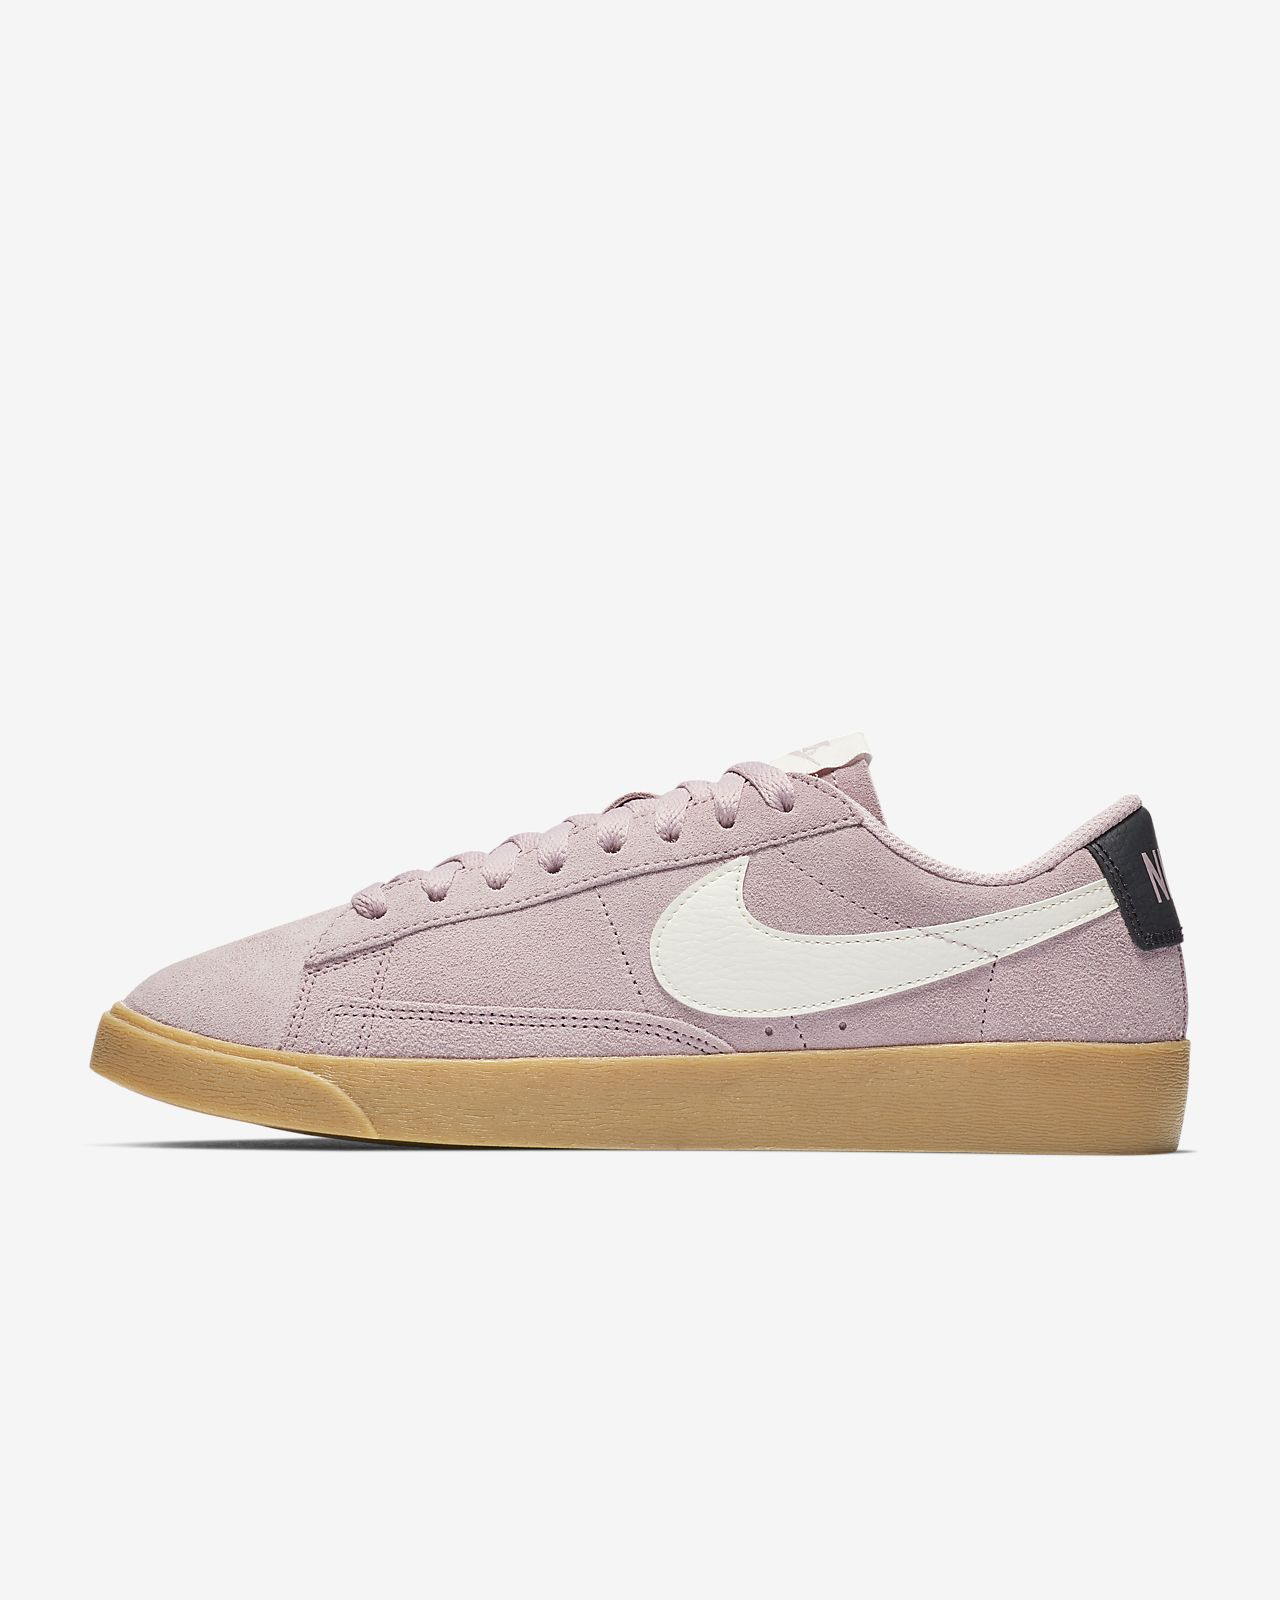 reputable site 3fe22 43e51 ... Chaussure Nike Blazer Low Suede pour Femme